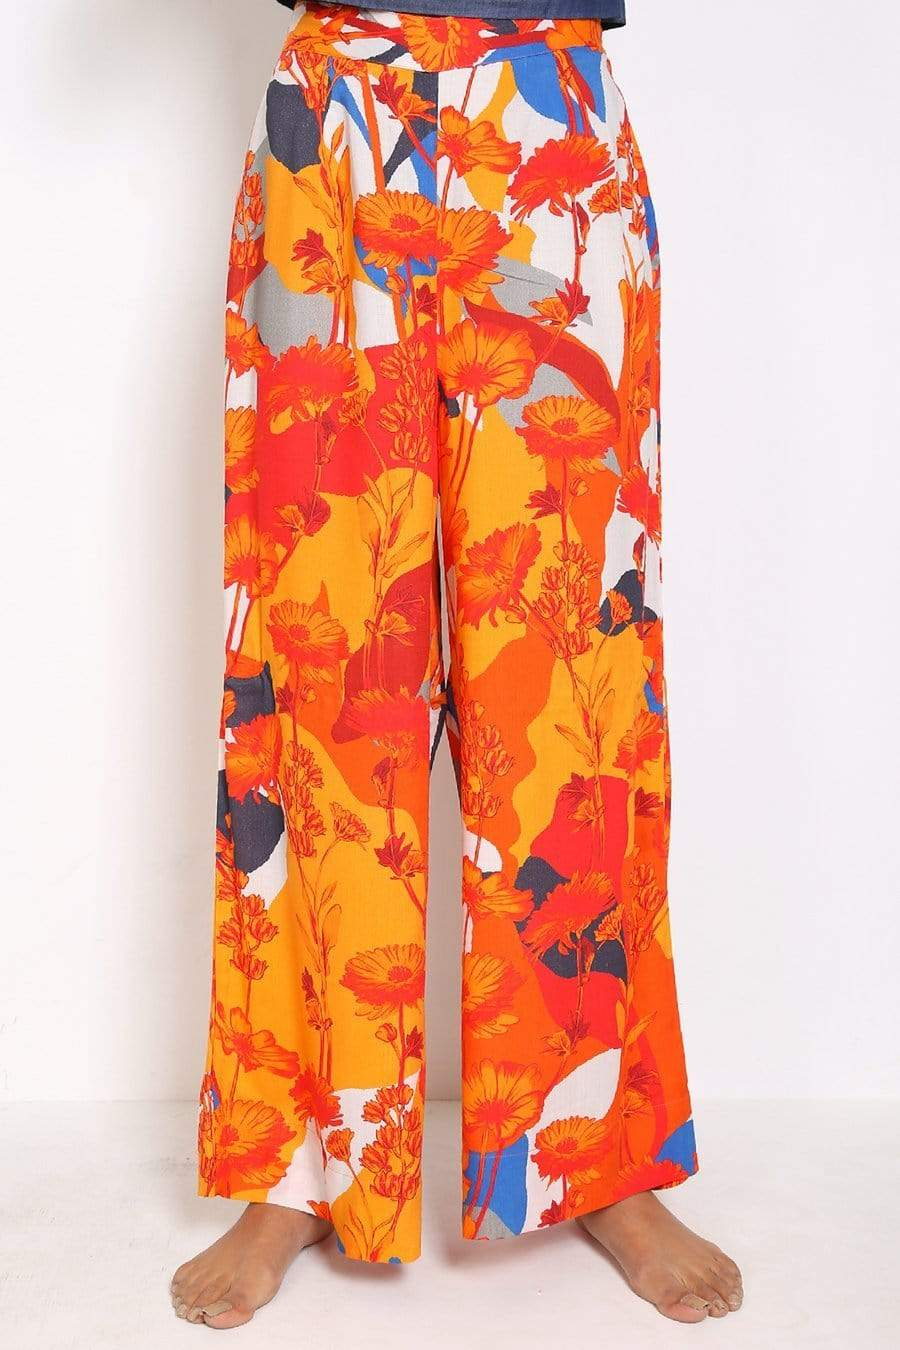 Generation - Orange Pajama Party Flared Pants